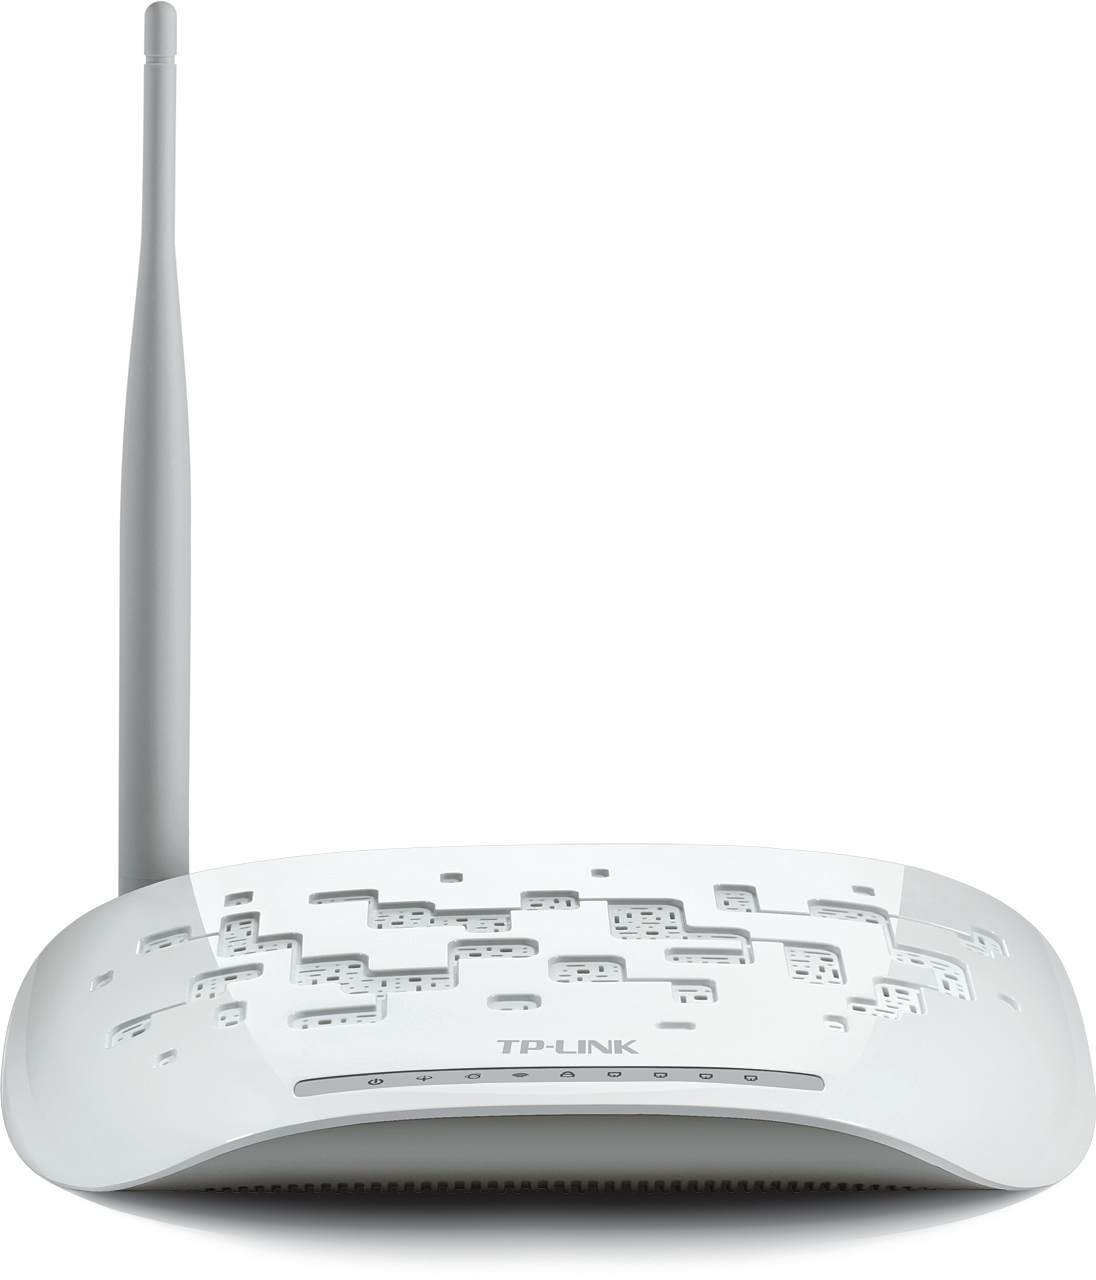 TP Link N600 Wireless + ADSL Router